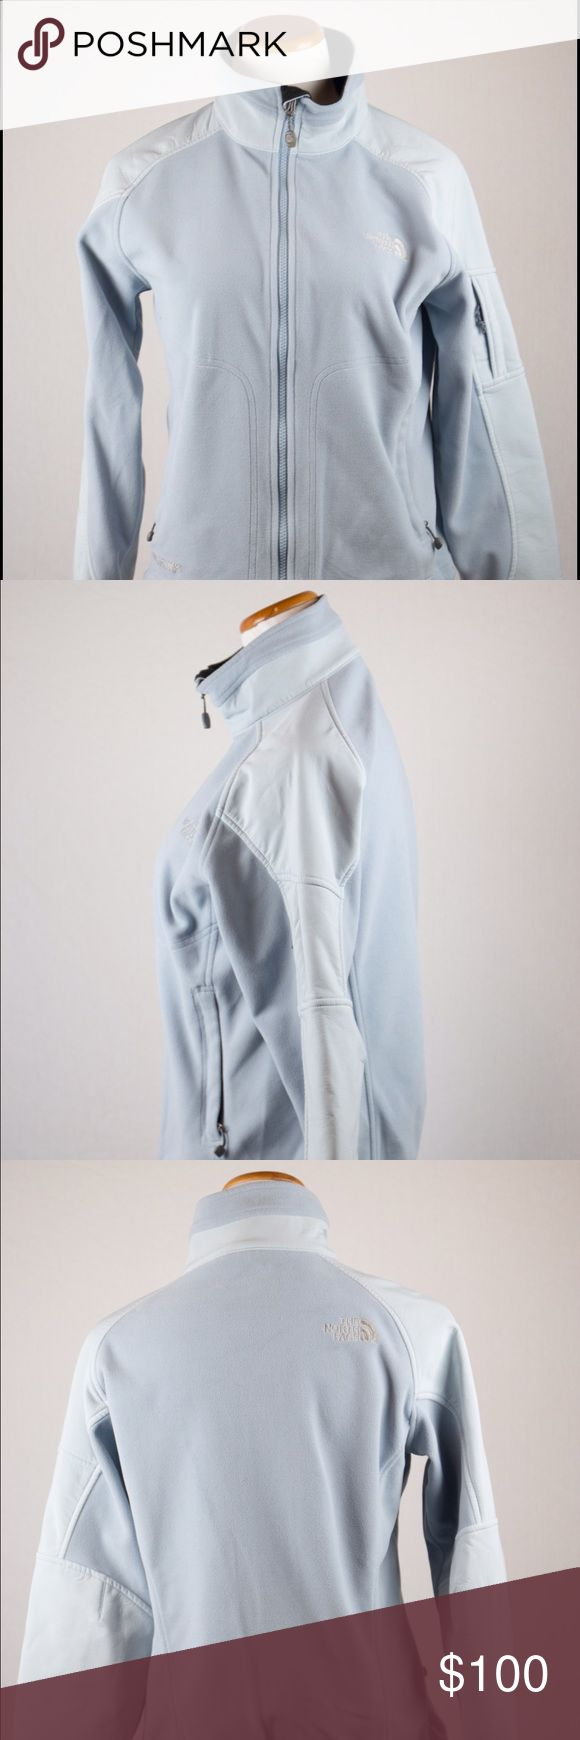 North Face Women's Zip Up Jacket This North Face jacket is a small light blue zip up. Perfect for cold weather! SKU in warehouse is #828 North Face Jackets & Coats